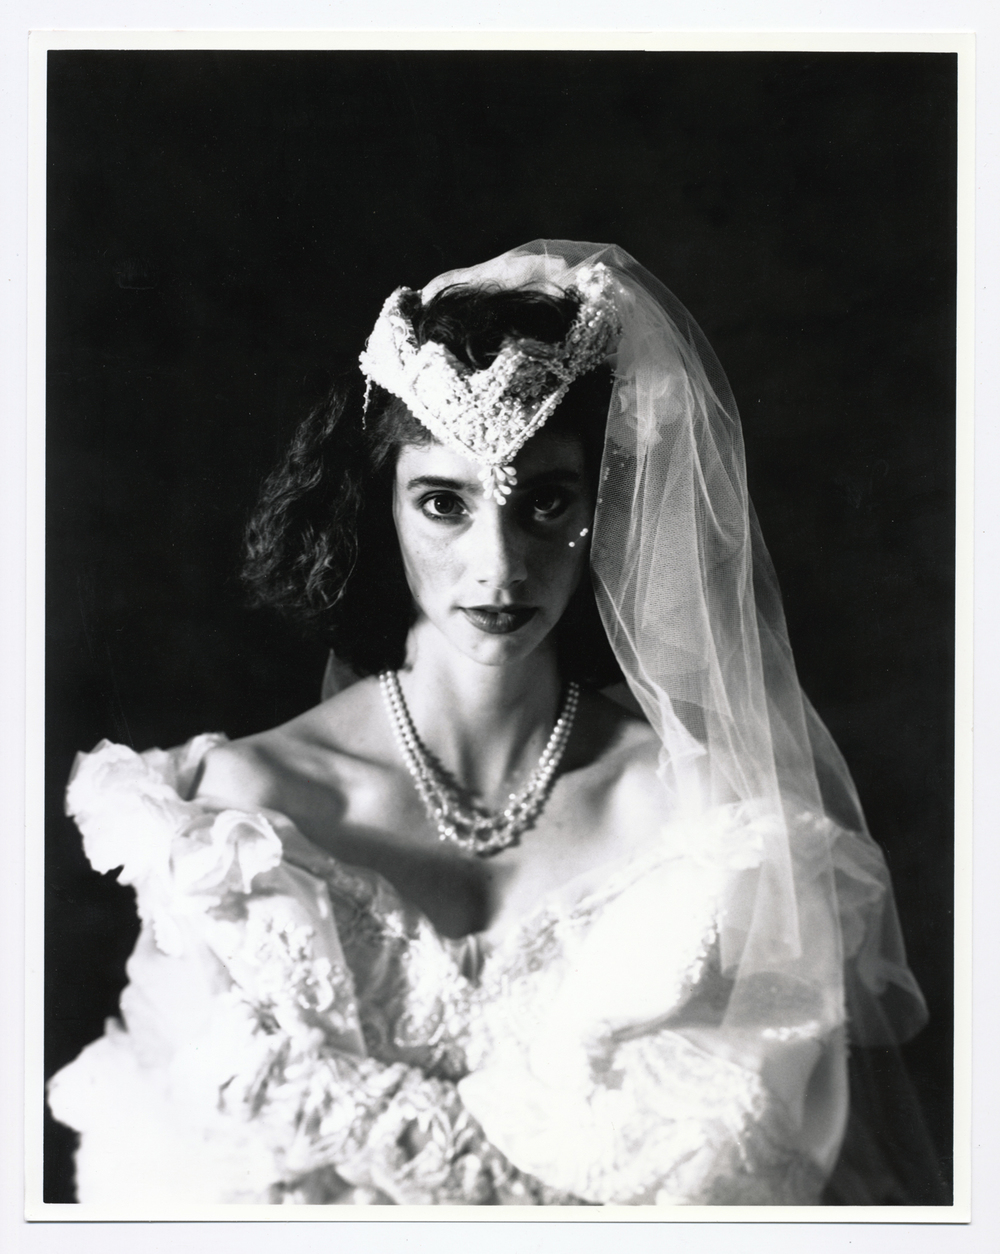 Teresa Wedding Series   4x5 silver print.  © Jud Burgess  1989